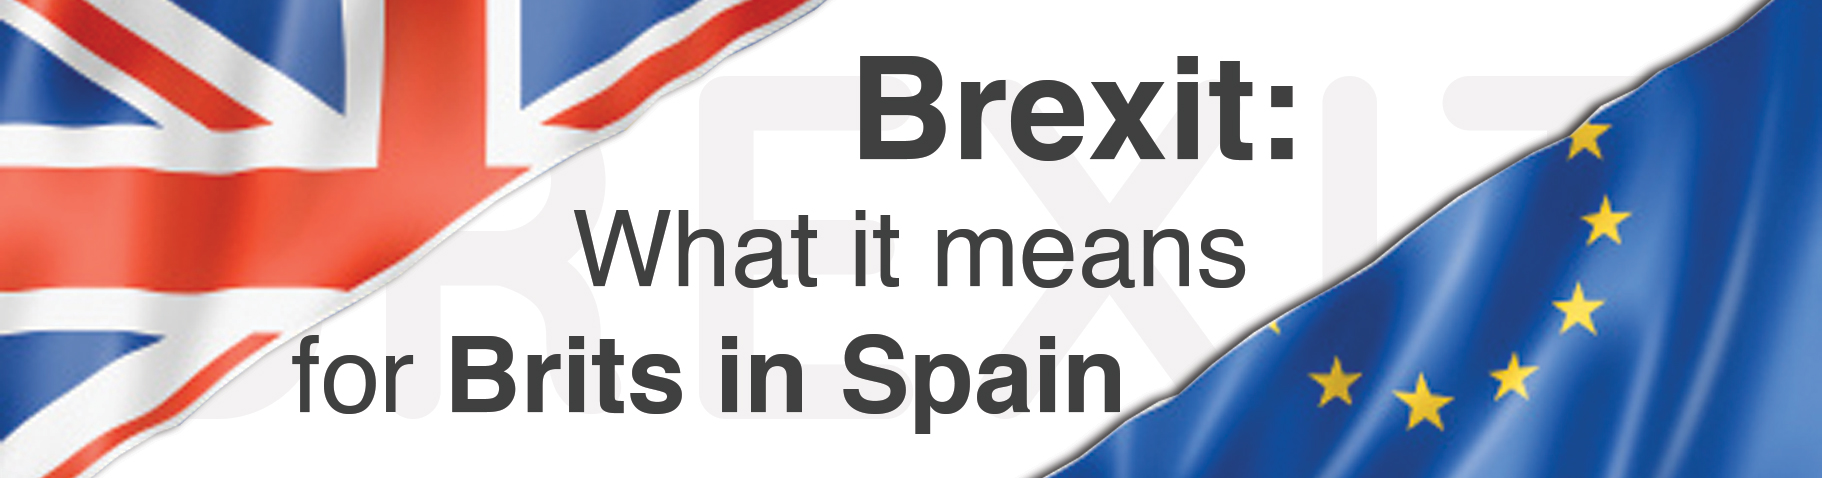 BREXIT - What it means for Brits in Spain